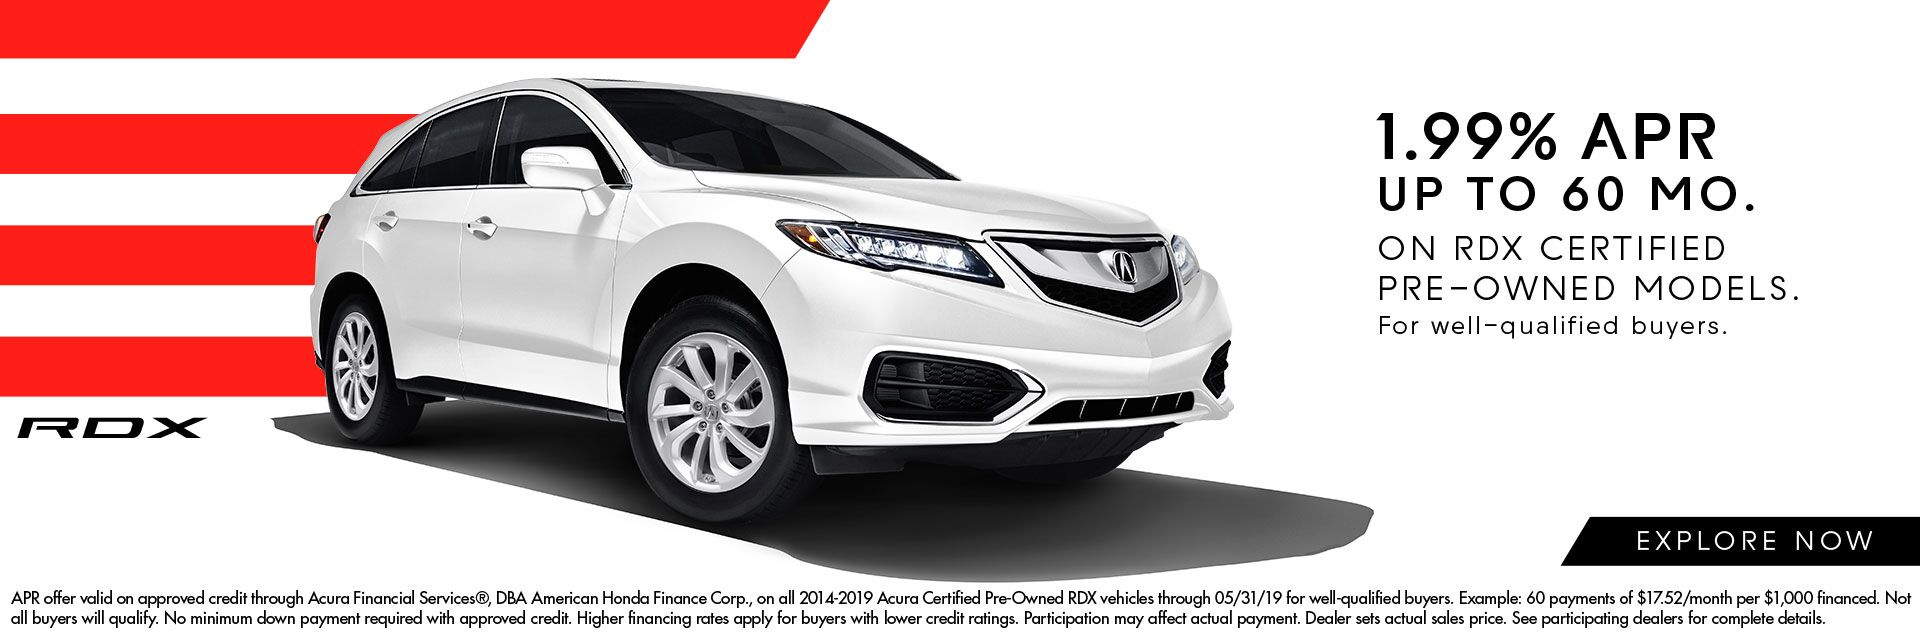 1.99% APR Incentives on Certified RDX at Jody Wilkinson Acura